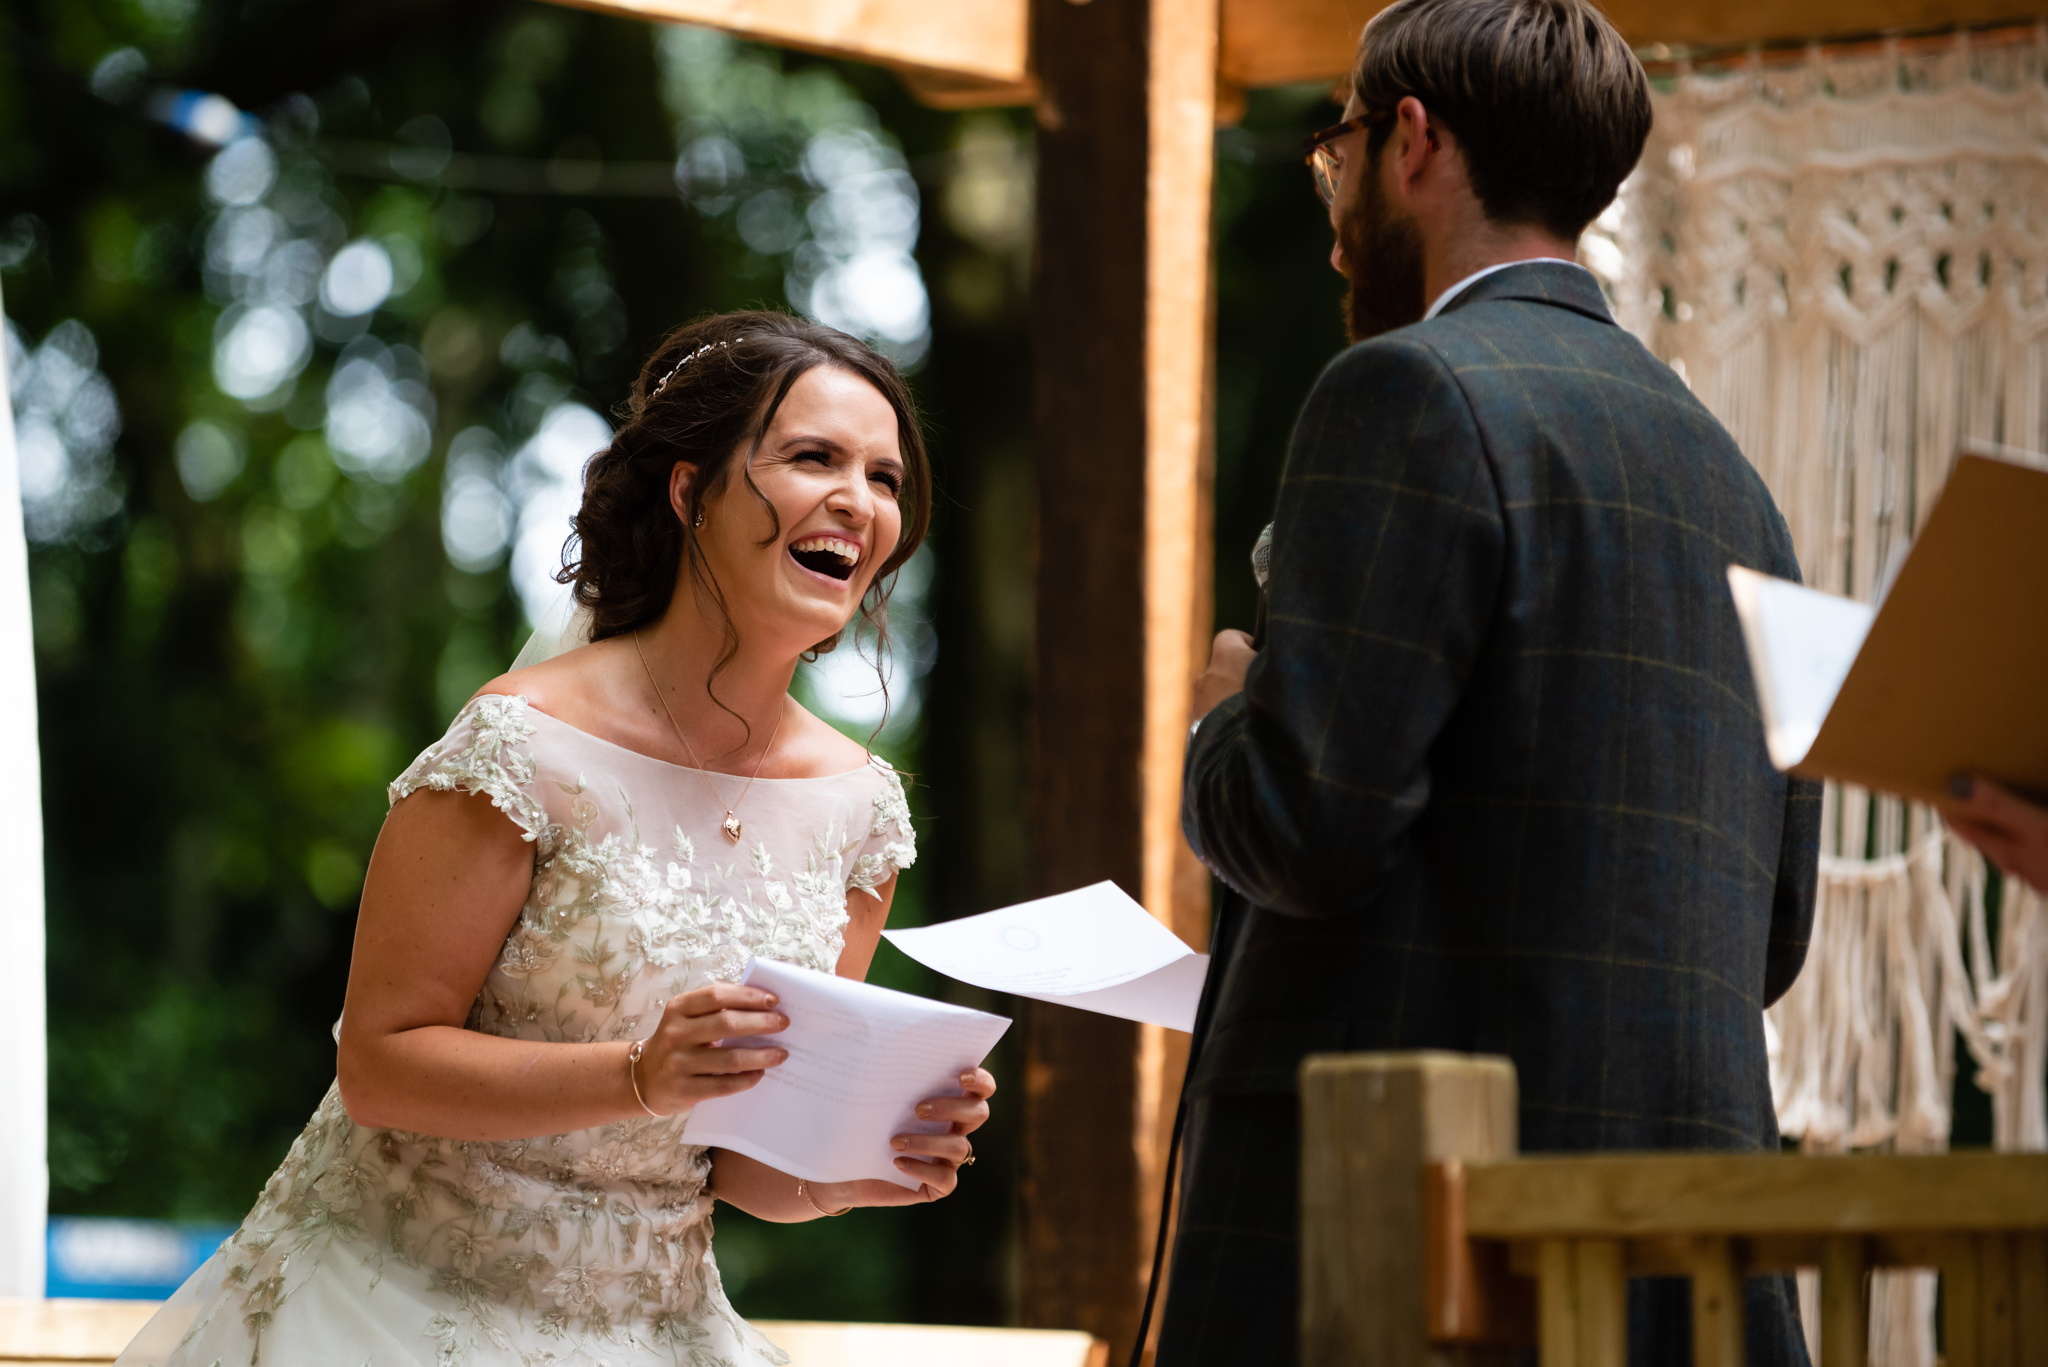 The Bride laughs during her wedding vows